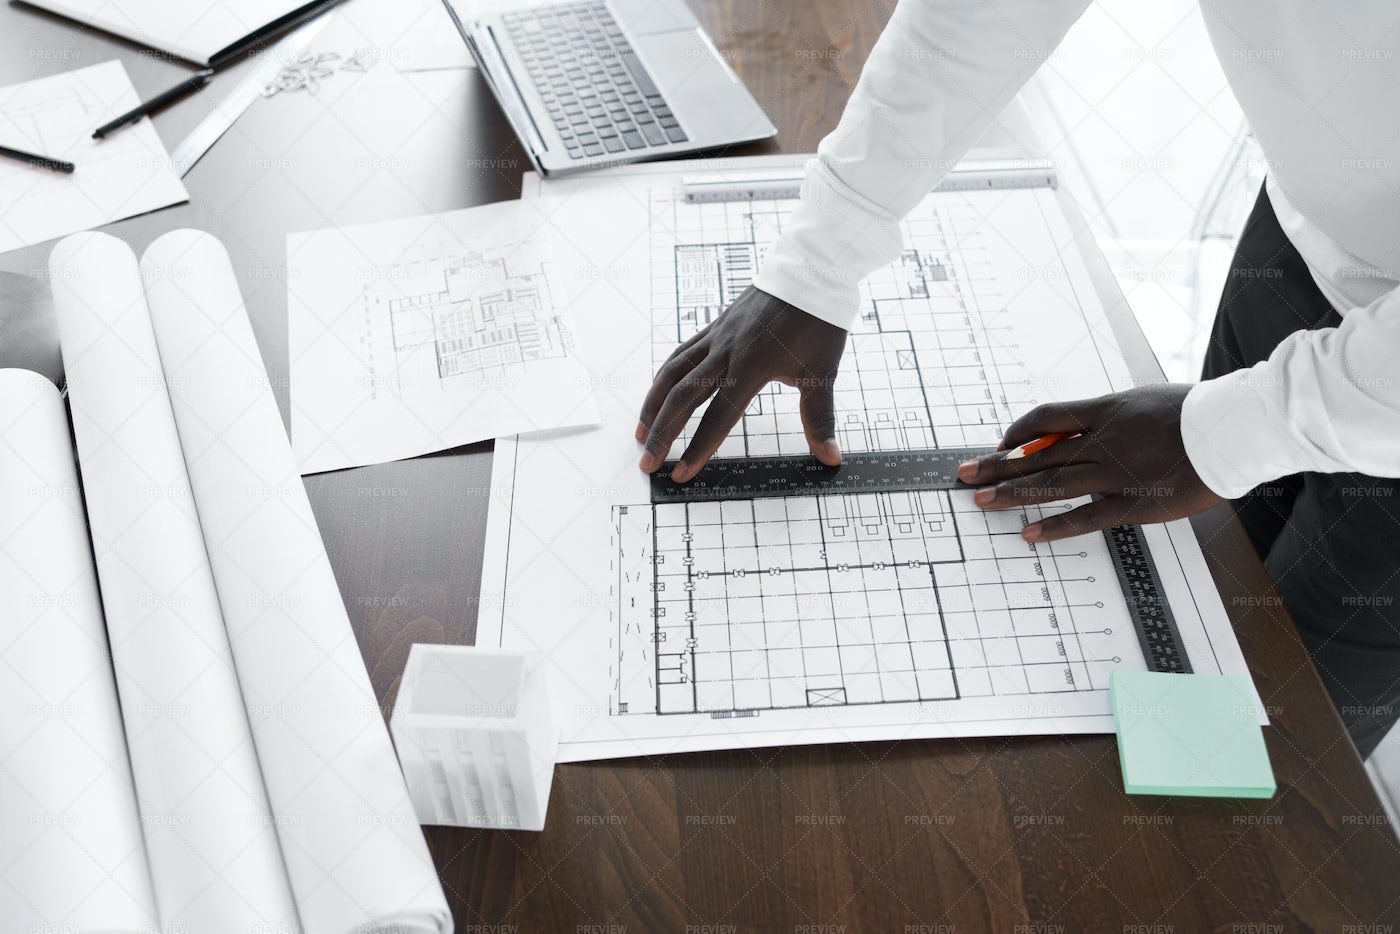 Drawing A Model Of New Building: Stock Photos